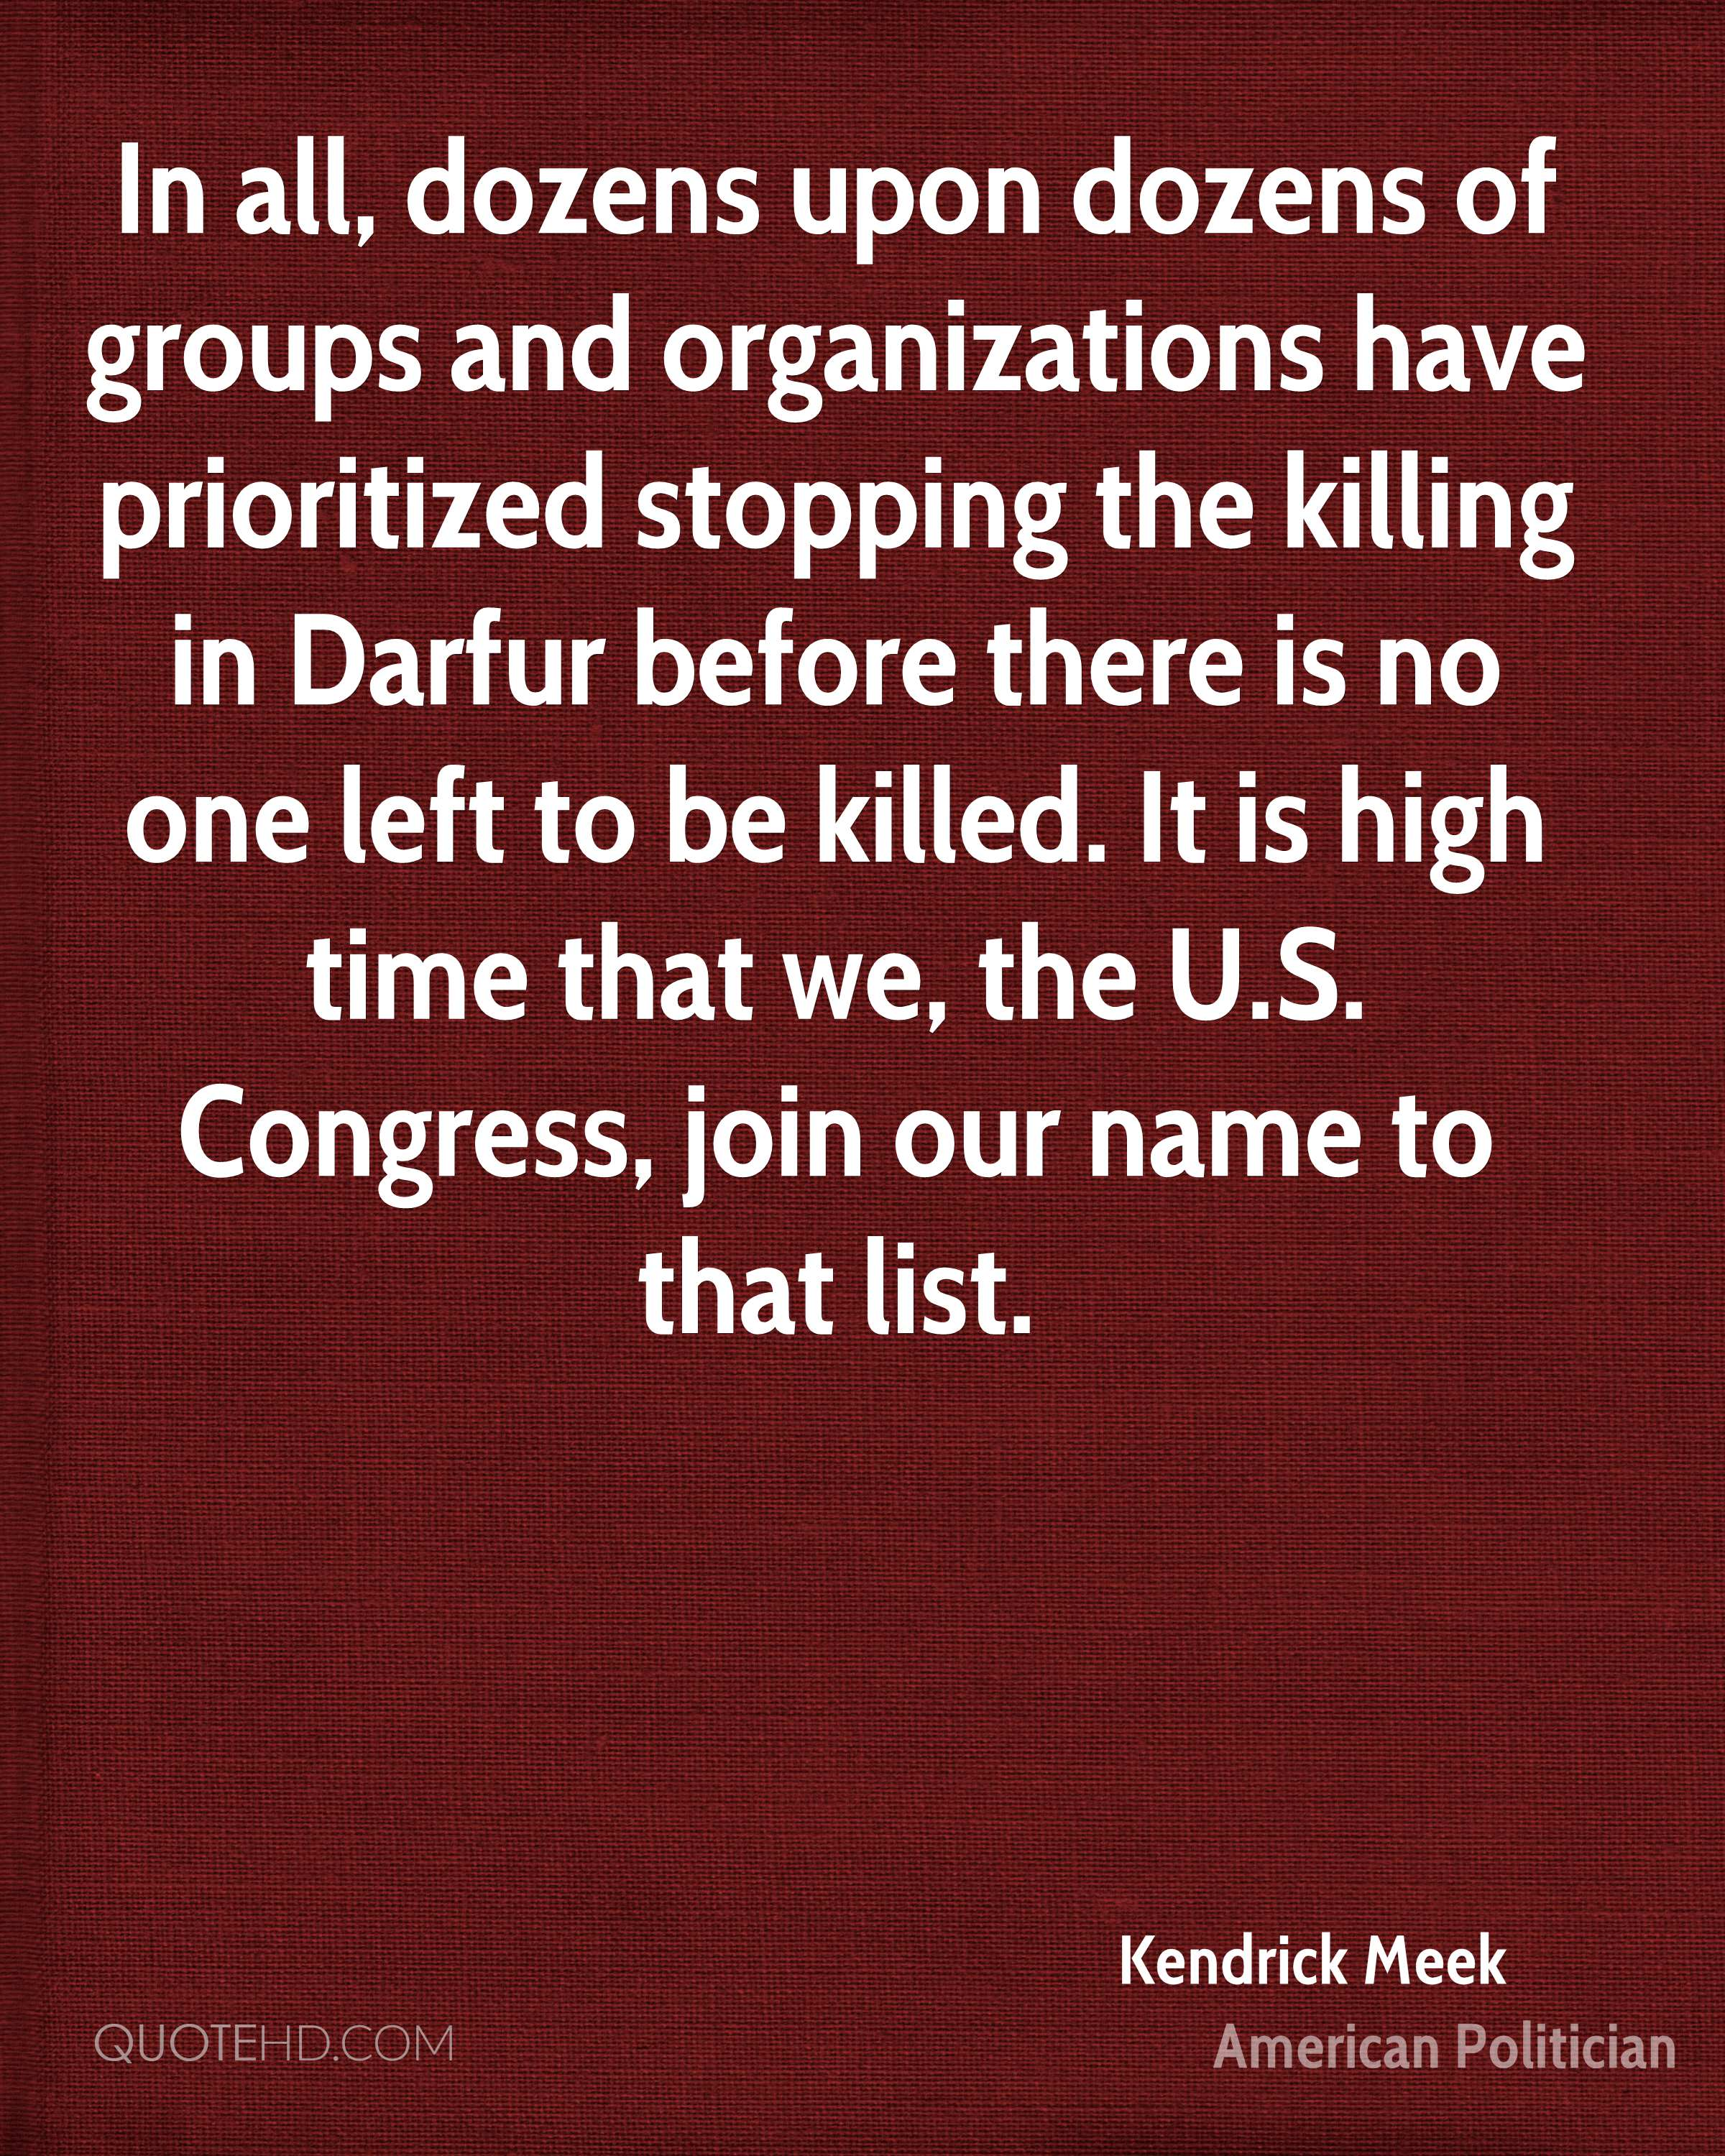 In all, dozens upon dozens of groups and organizations have prioritized stopping the killing in Darfur before there is no one left to be killed. It is high time that we, the U.S. Congress, join our name to that list.